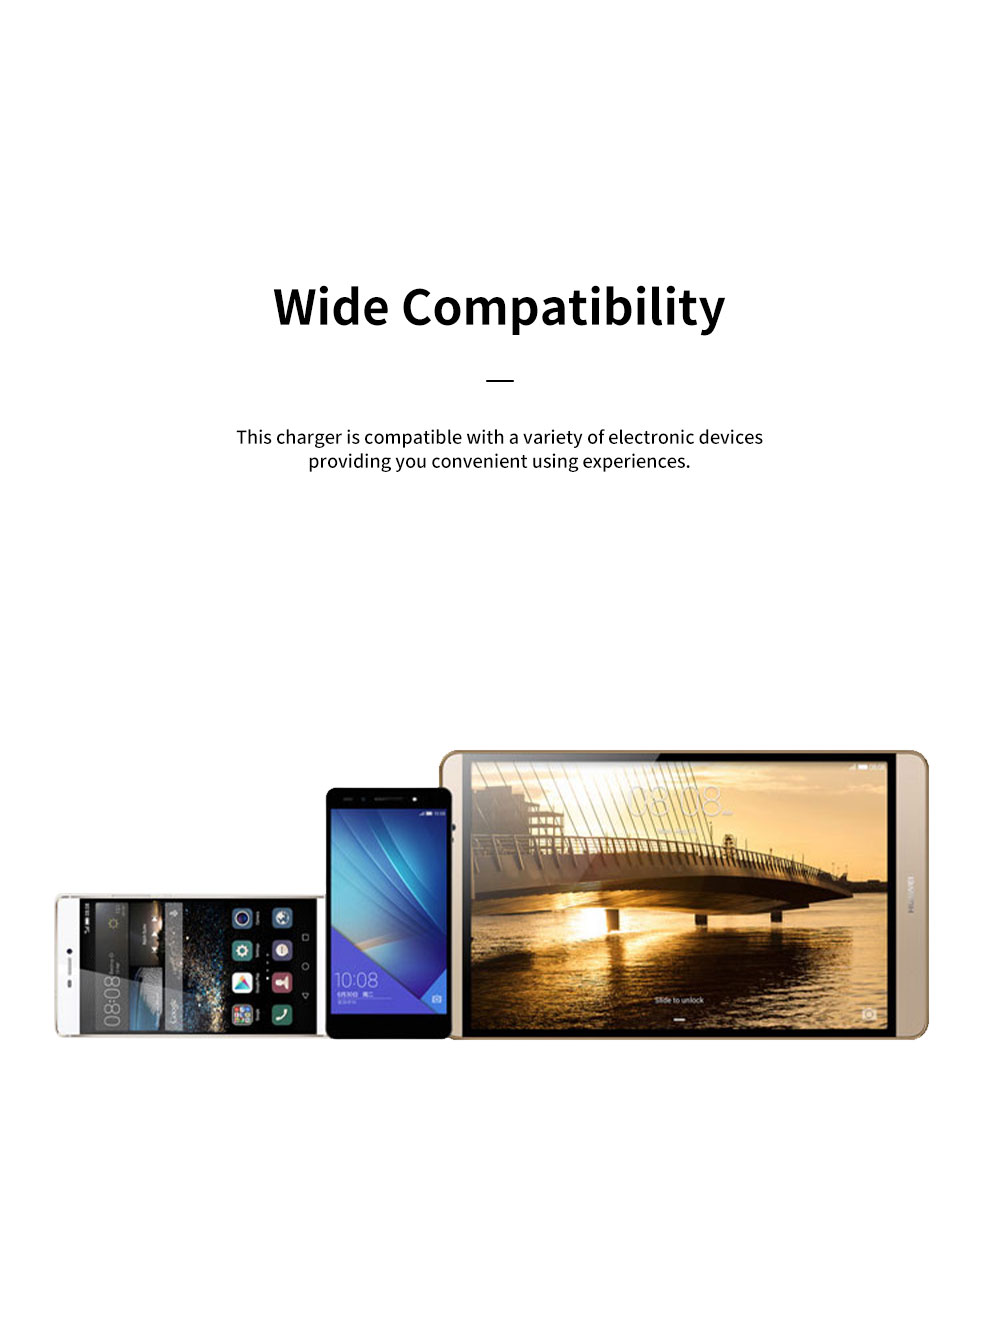 Light Portable Super Quick Charging Wide Compatibility Original Huawei Charger with 8 Protections 6-Level Energy Efficiency Standard 2